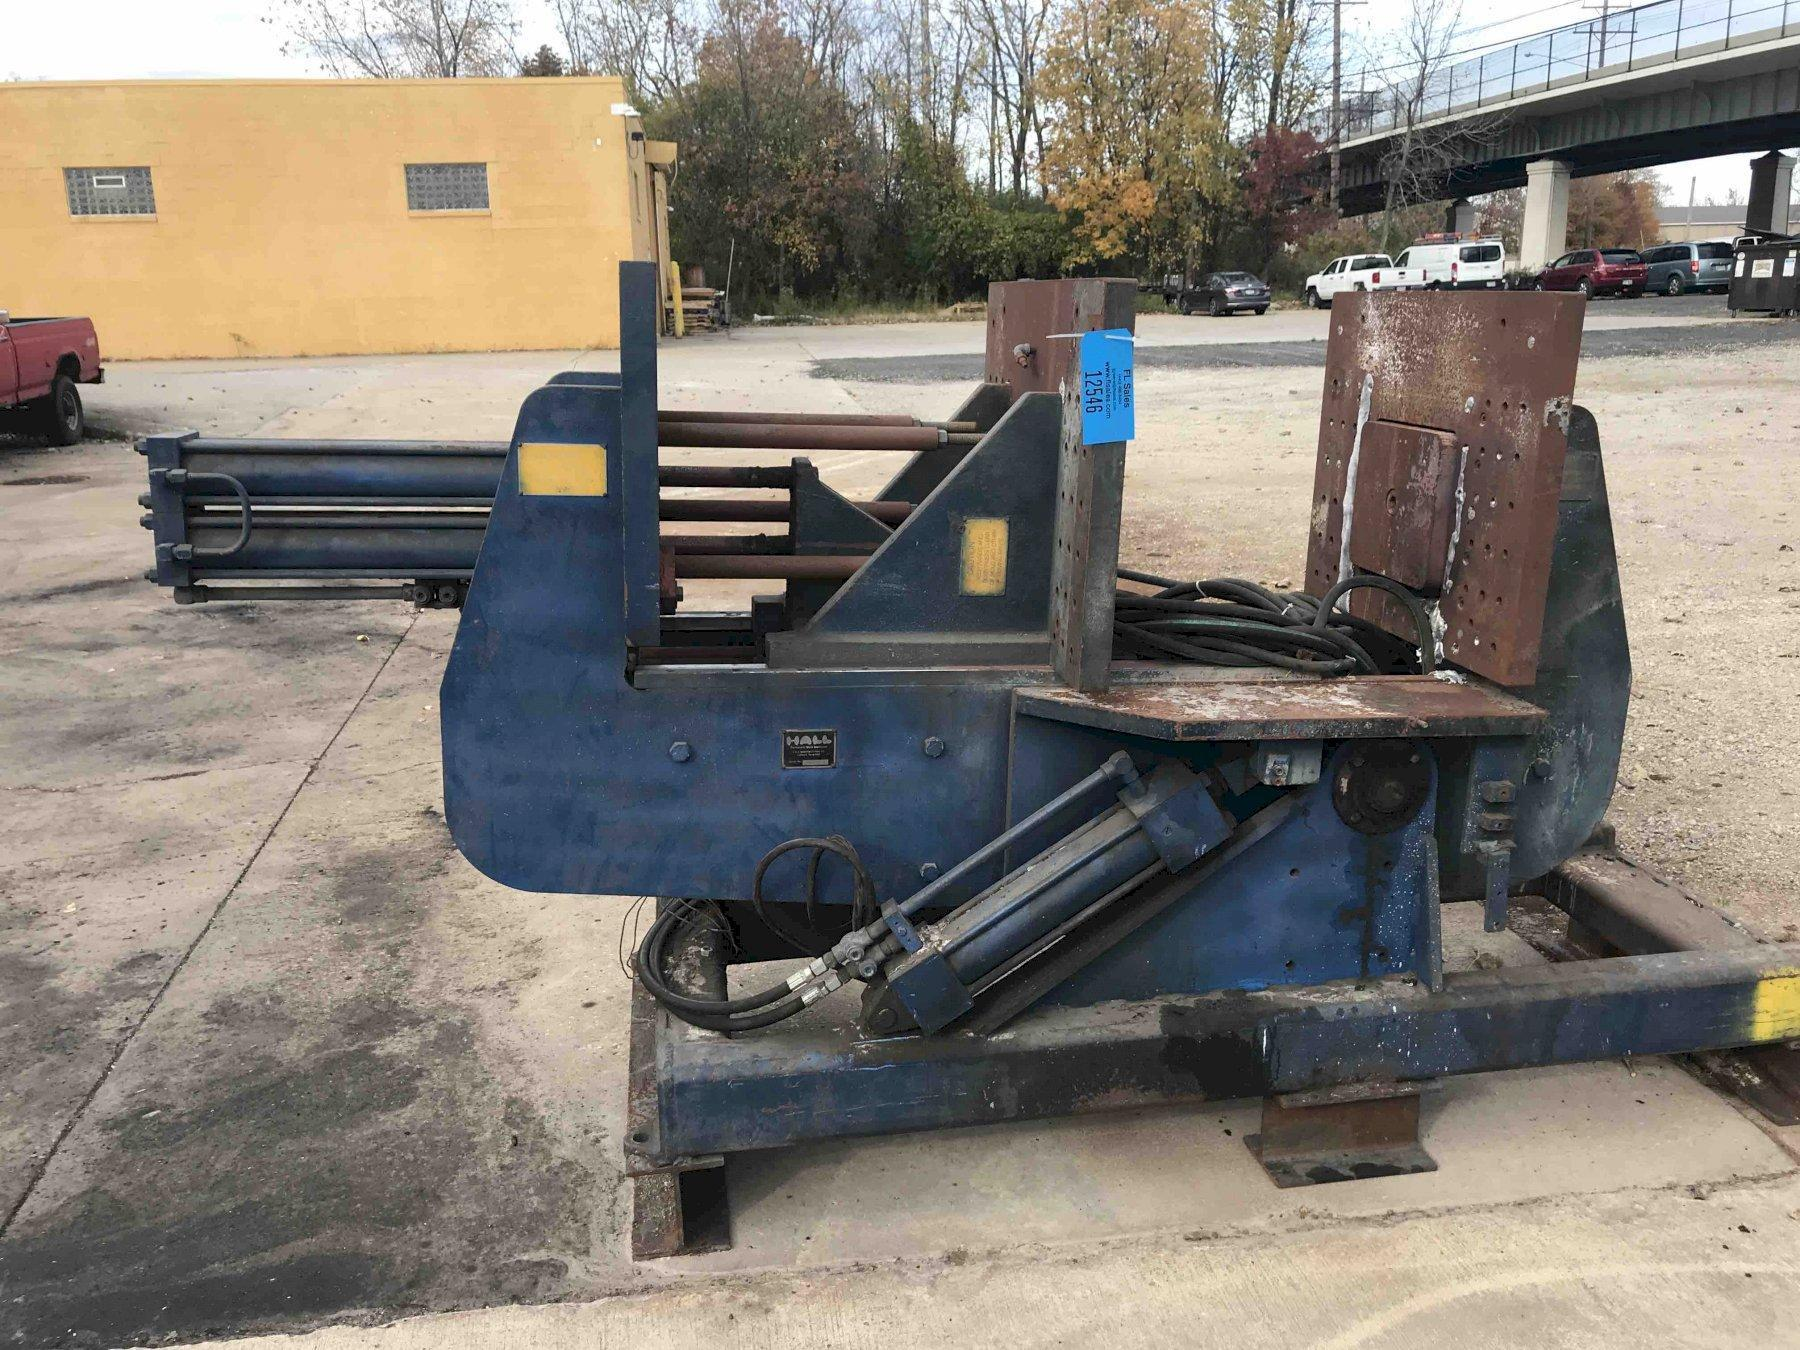 Hall model hm2 permanent molding machine s/n 209897, twin cylinder type, 24